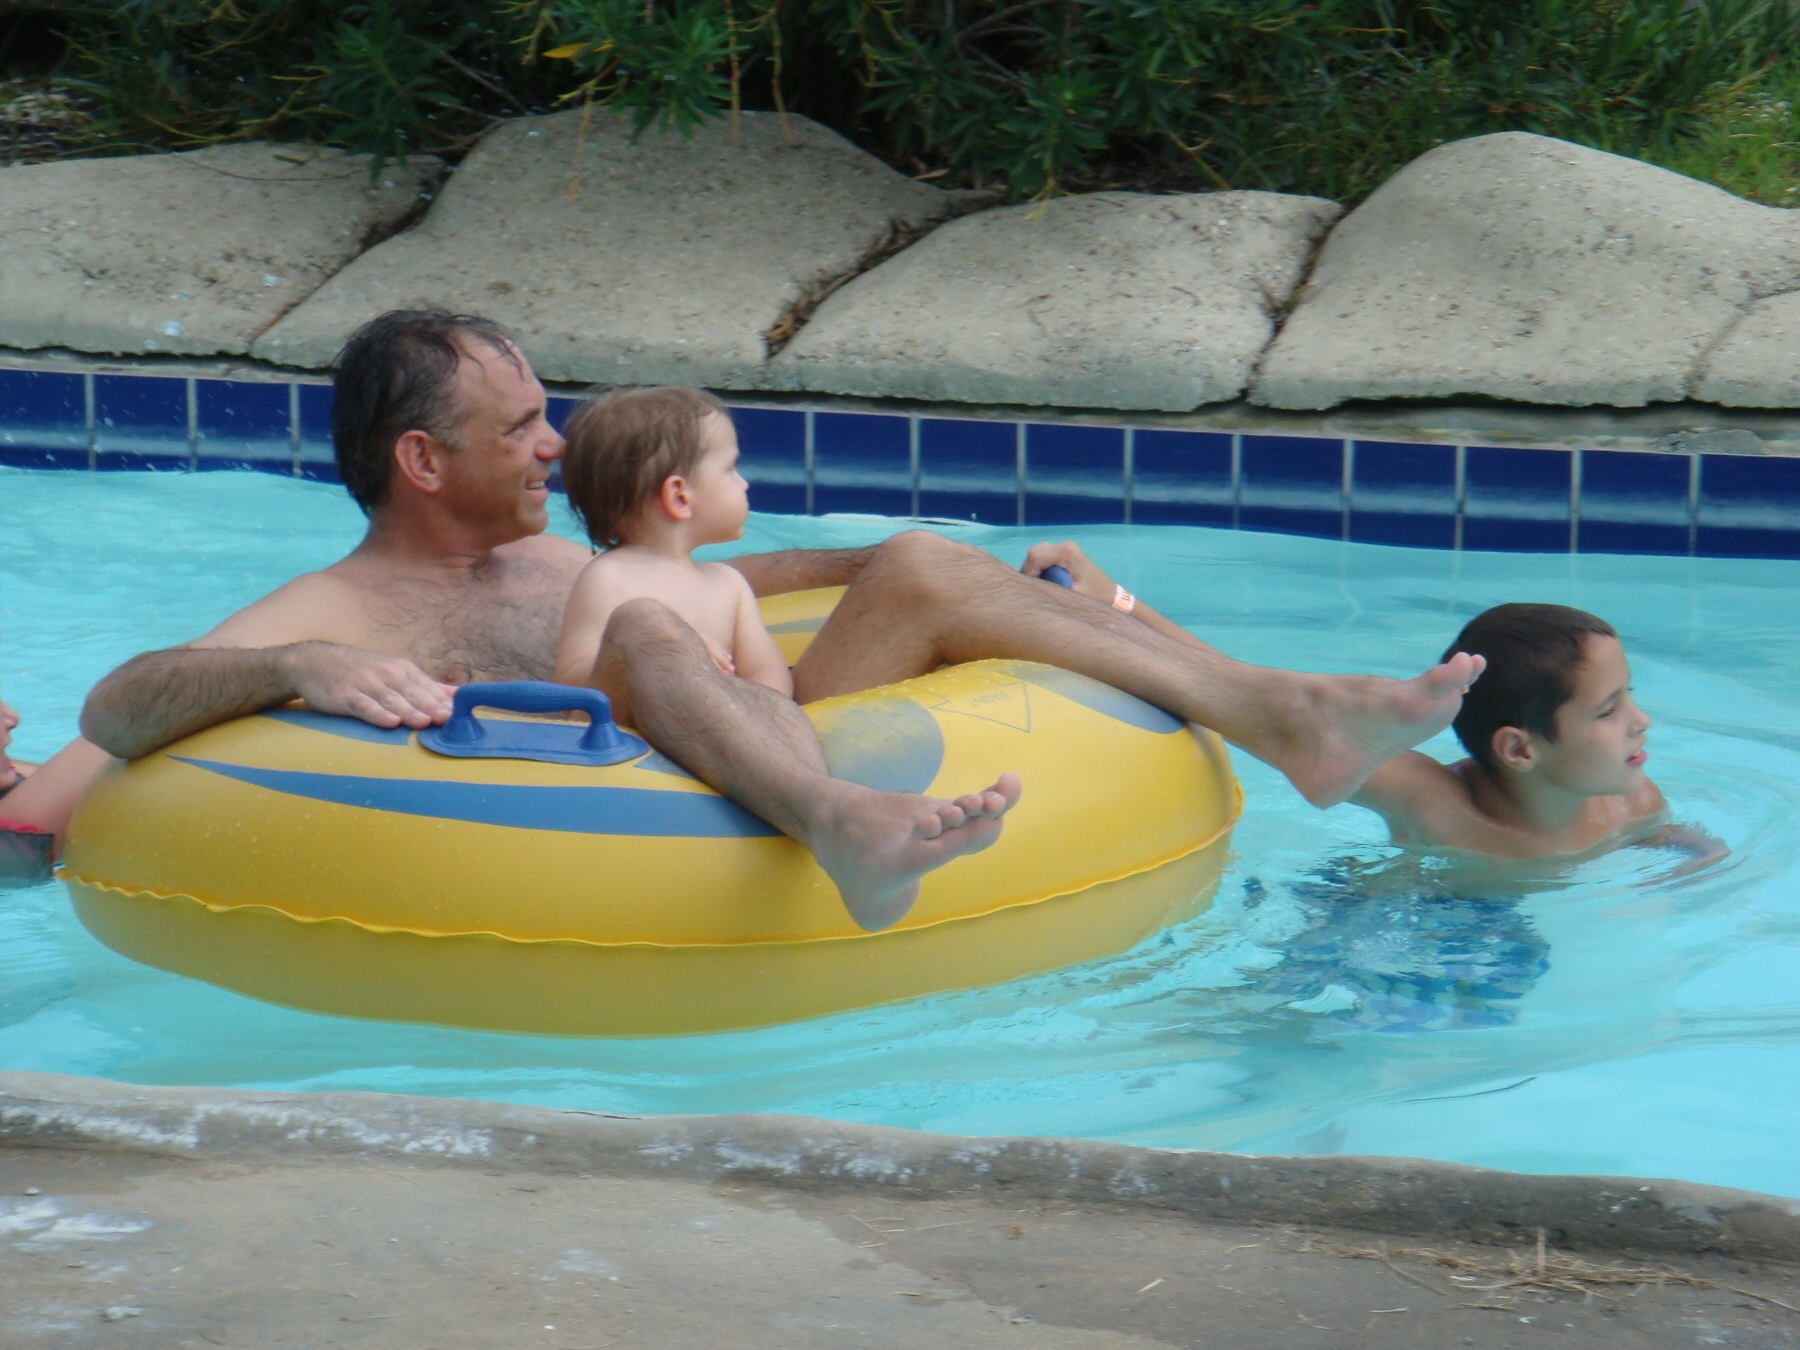 man with child on lazy river